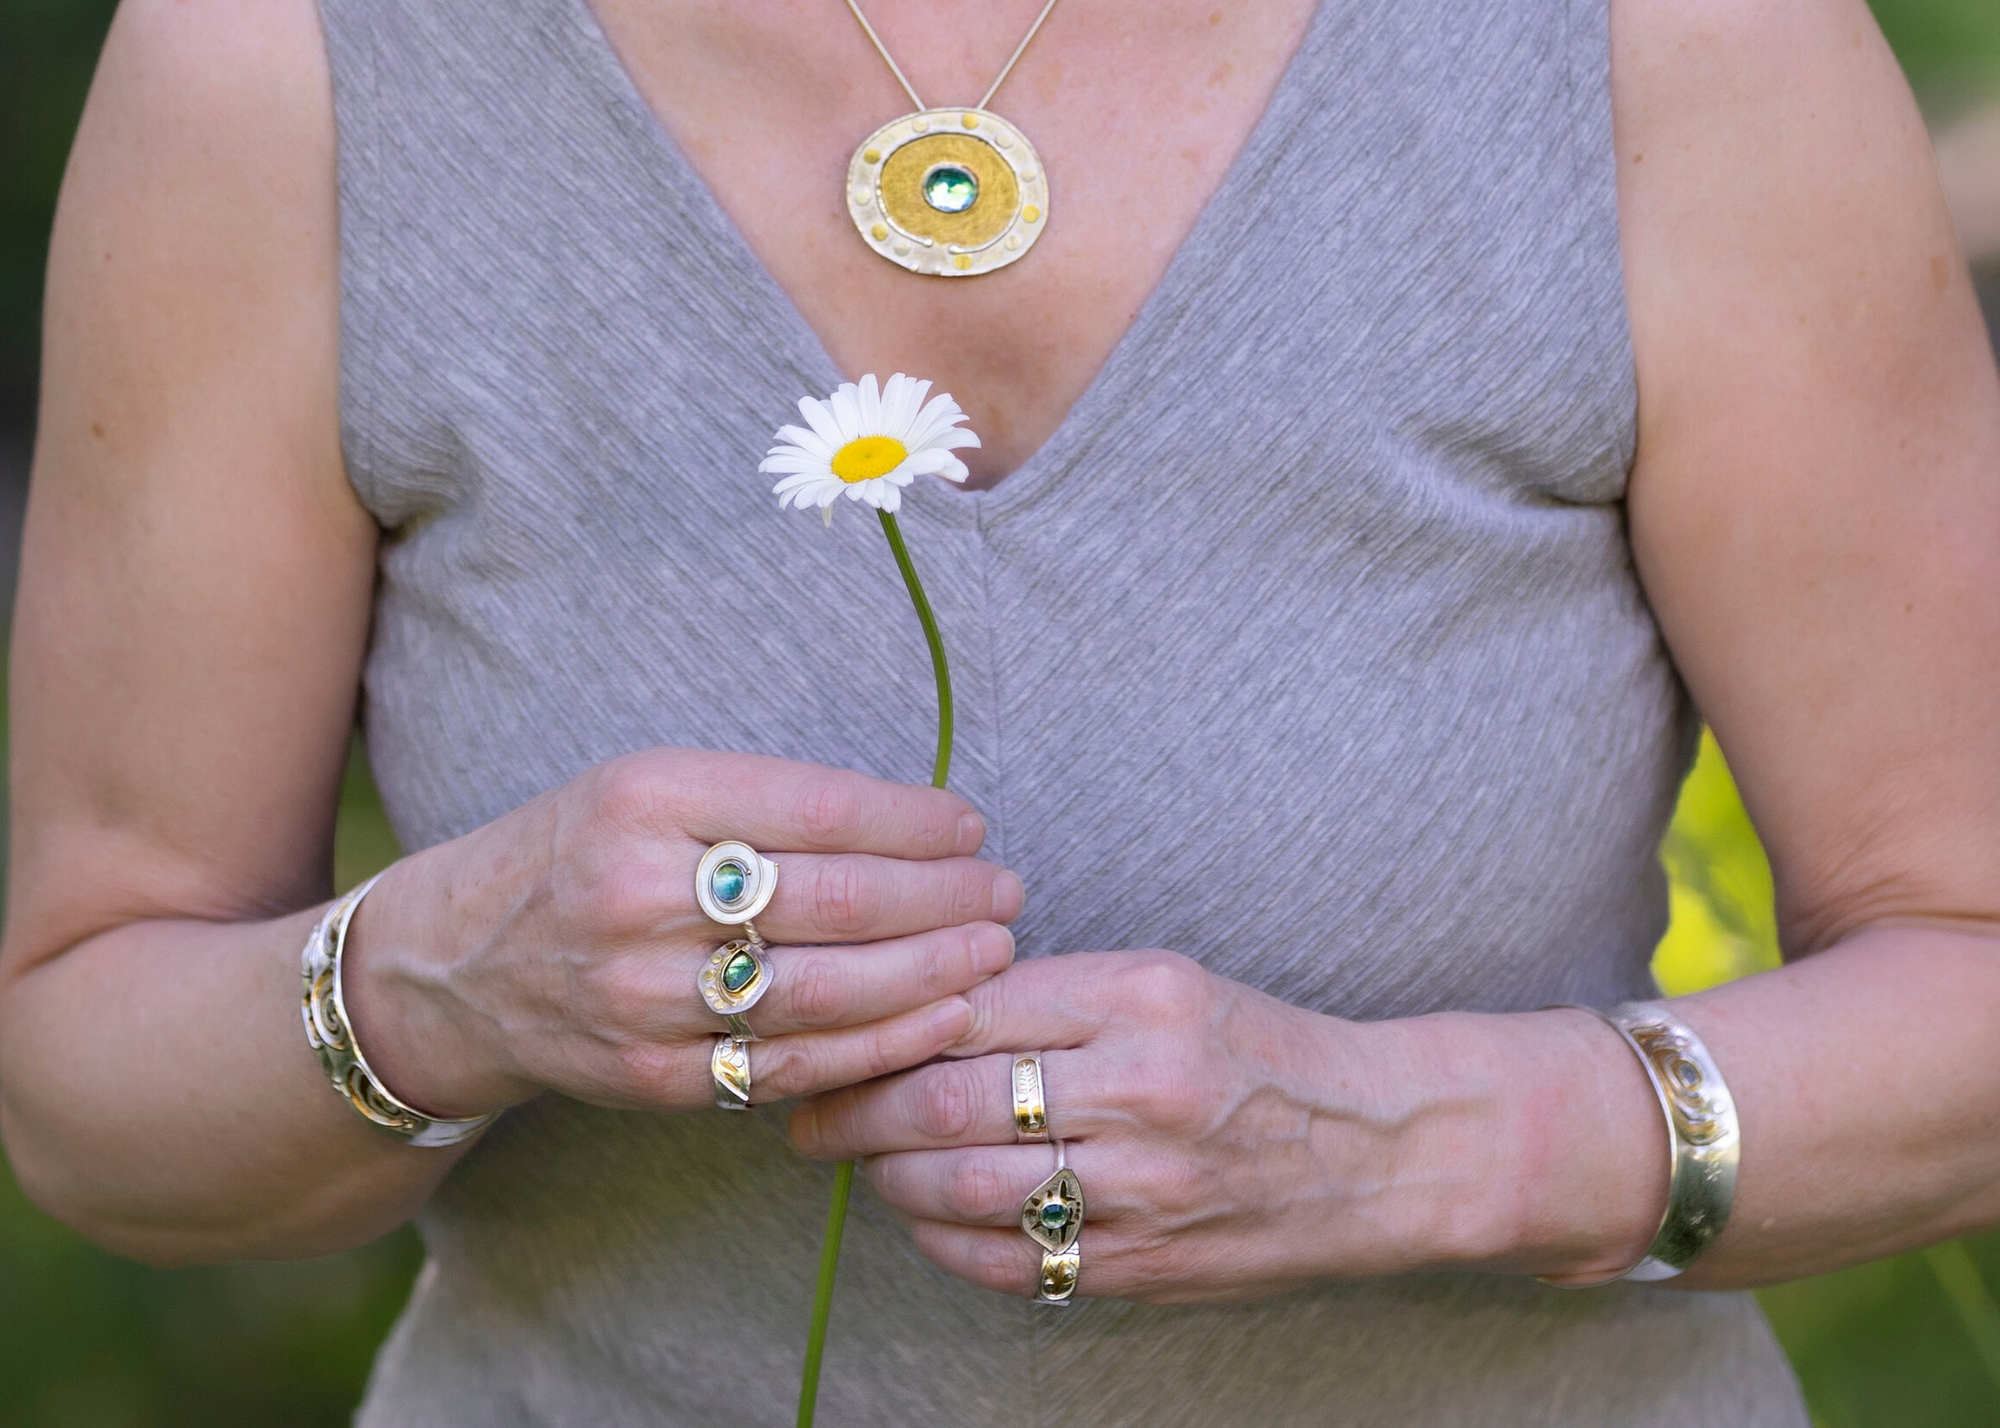 The Symbolism Of Charm Rings and Where You Wear Them   Jewelry Inspired By Irish Symbols   By Deirdre Donnelly Jewelry Art